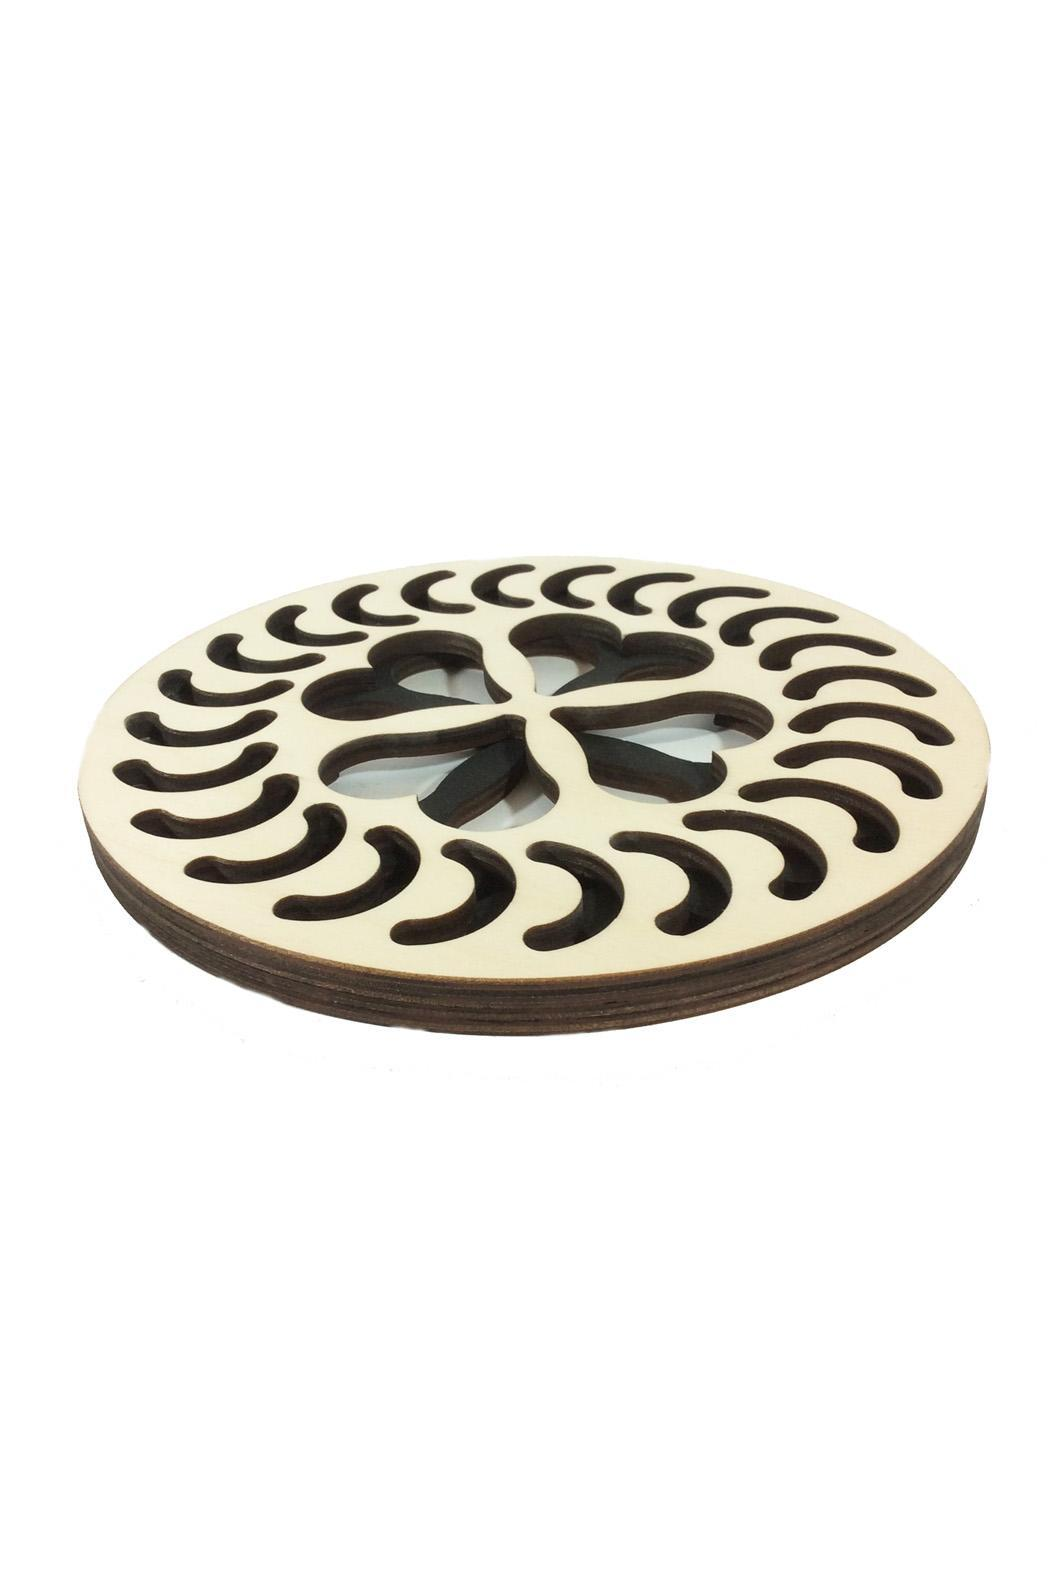 baltic by design trivet heart design from iowa city by iowa artisans gallery shoptiques. Black Bedroom Furniture Sets. Home Design Ideas